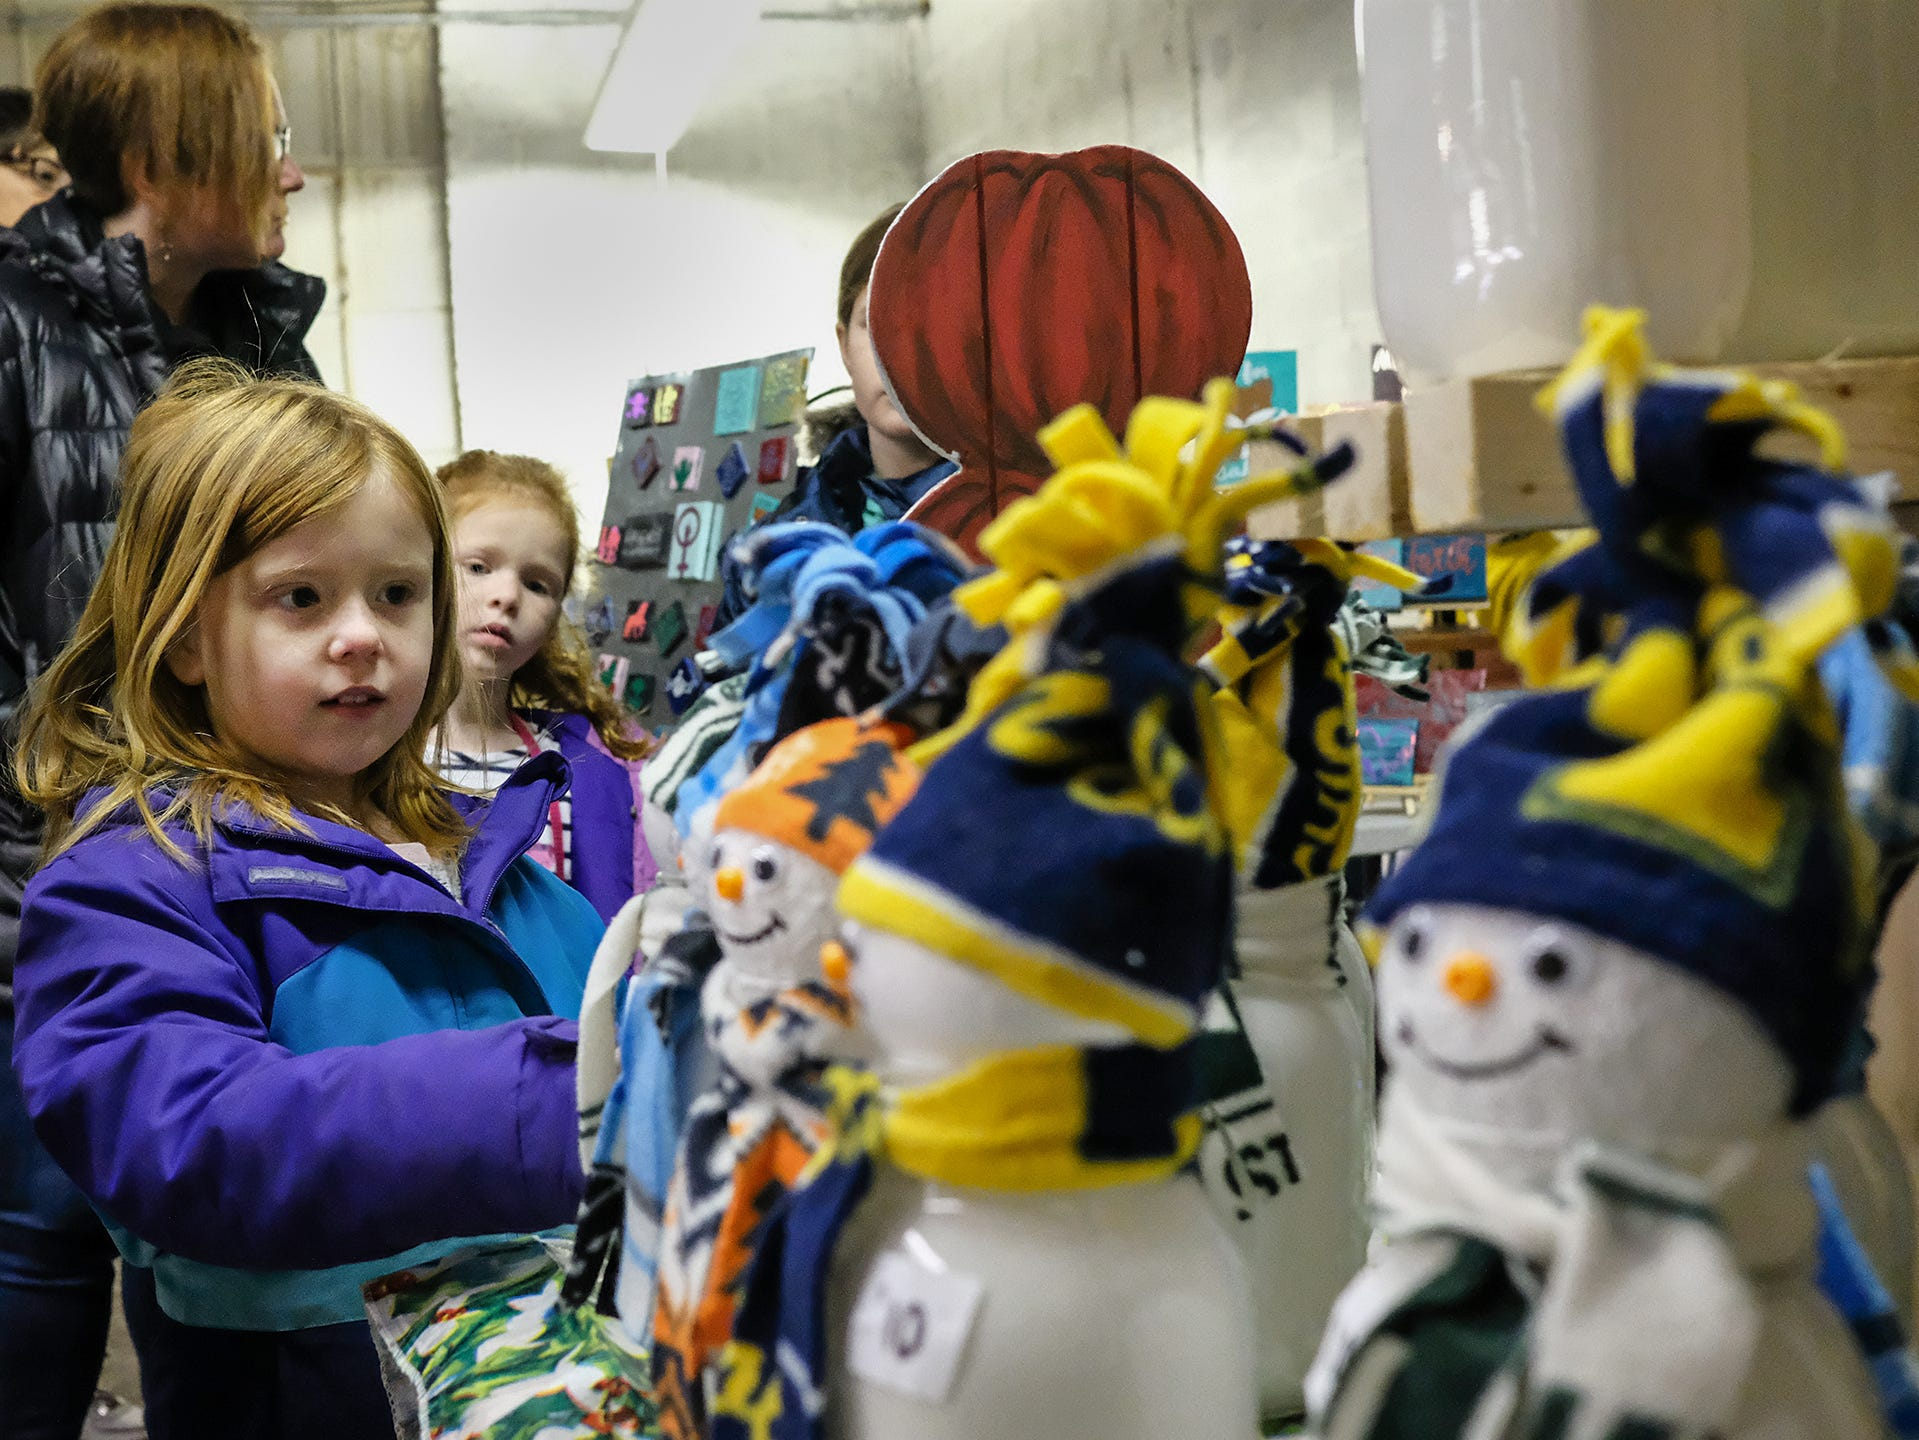 Kirsten Gibson, 7, from Lansing, checks out the mason jar snowmen made by pop-up vendor, Art by Autumn J. at the Reo Twon Marketplace Saturday, Dec. 8, 2018.